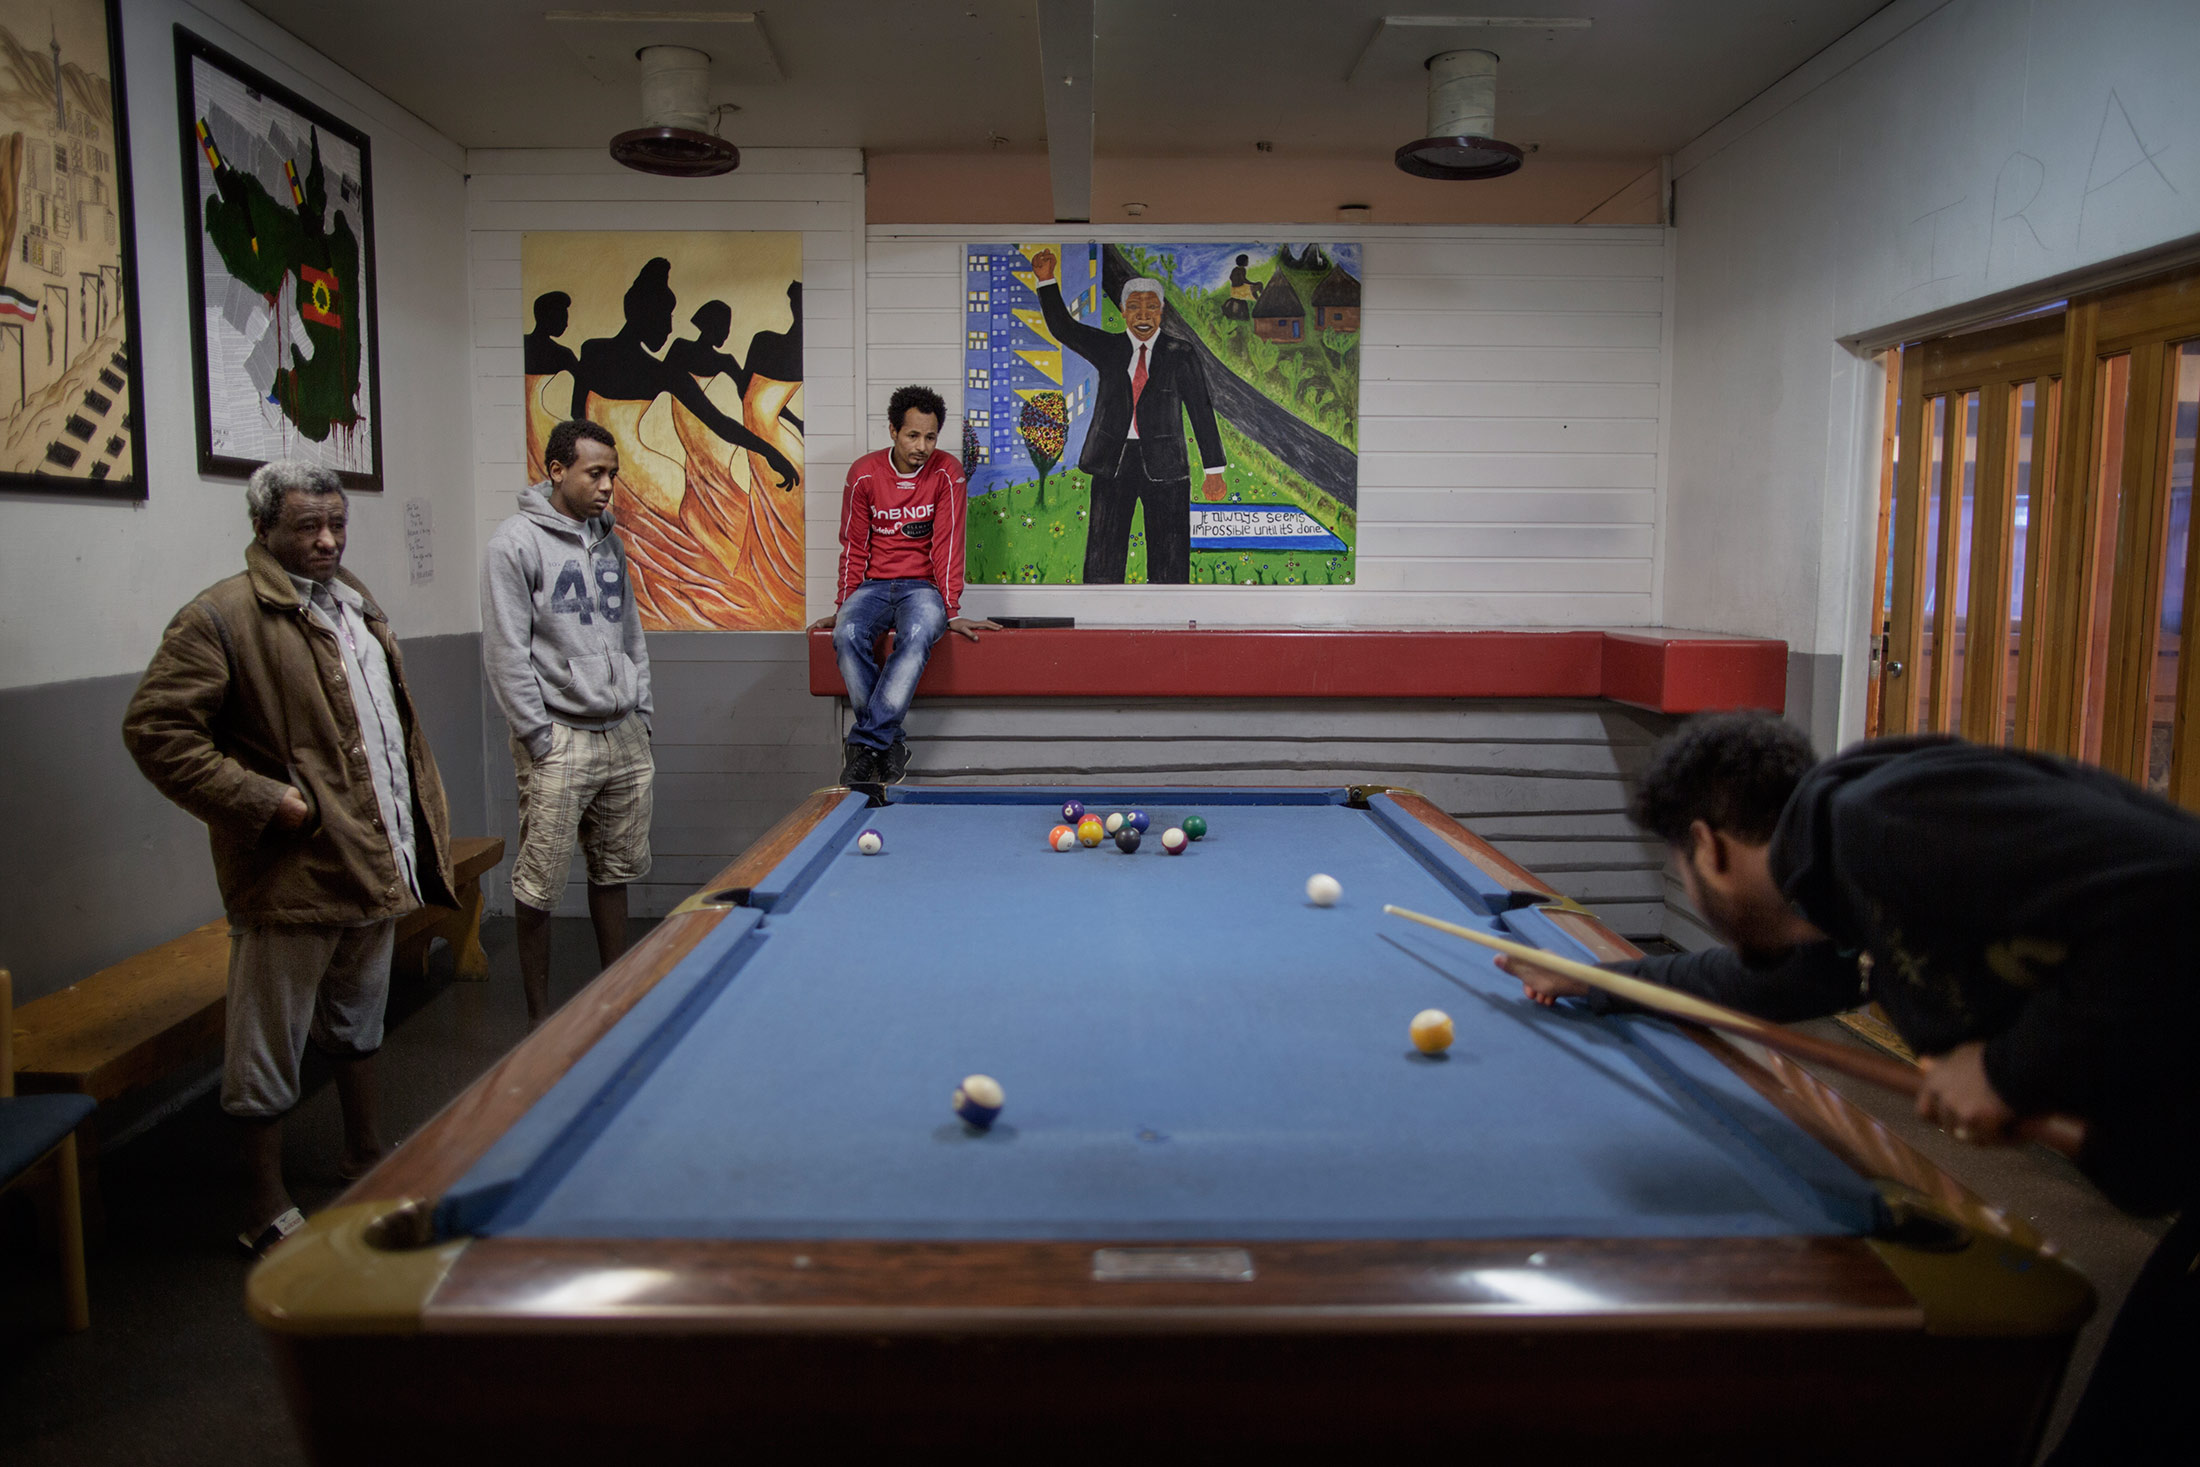 Asylum seekers play billiards at the Hero reception center in Valdres.